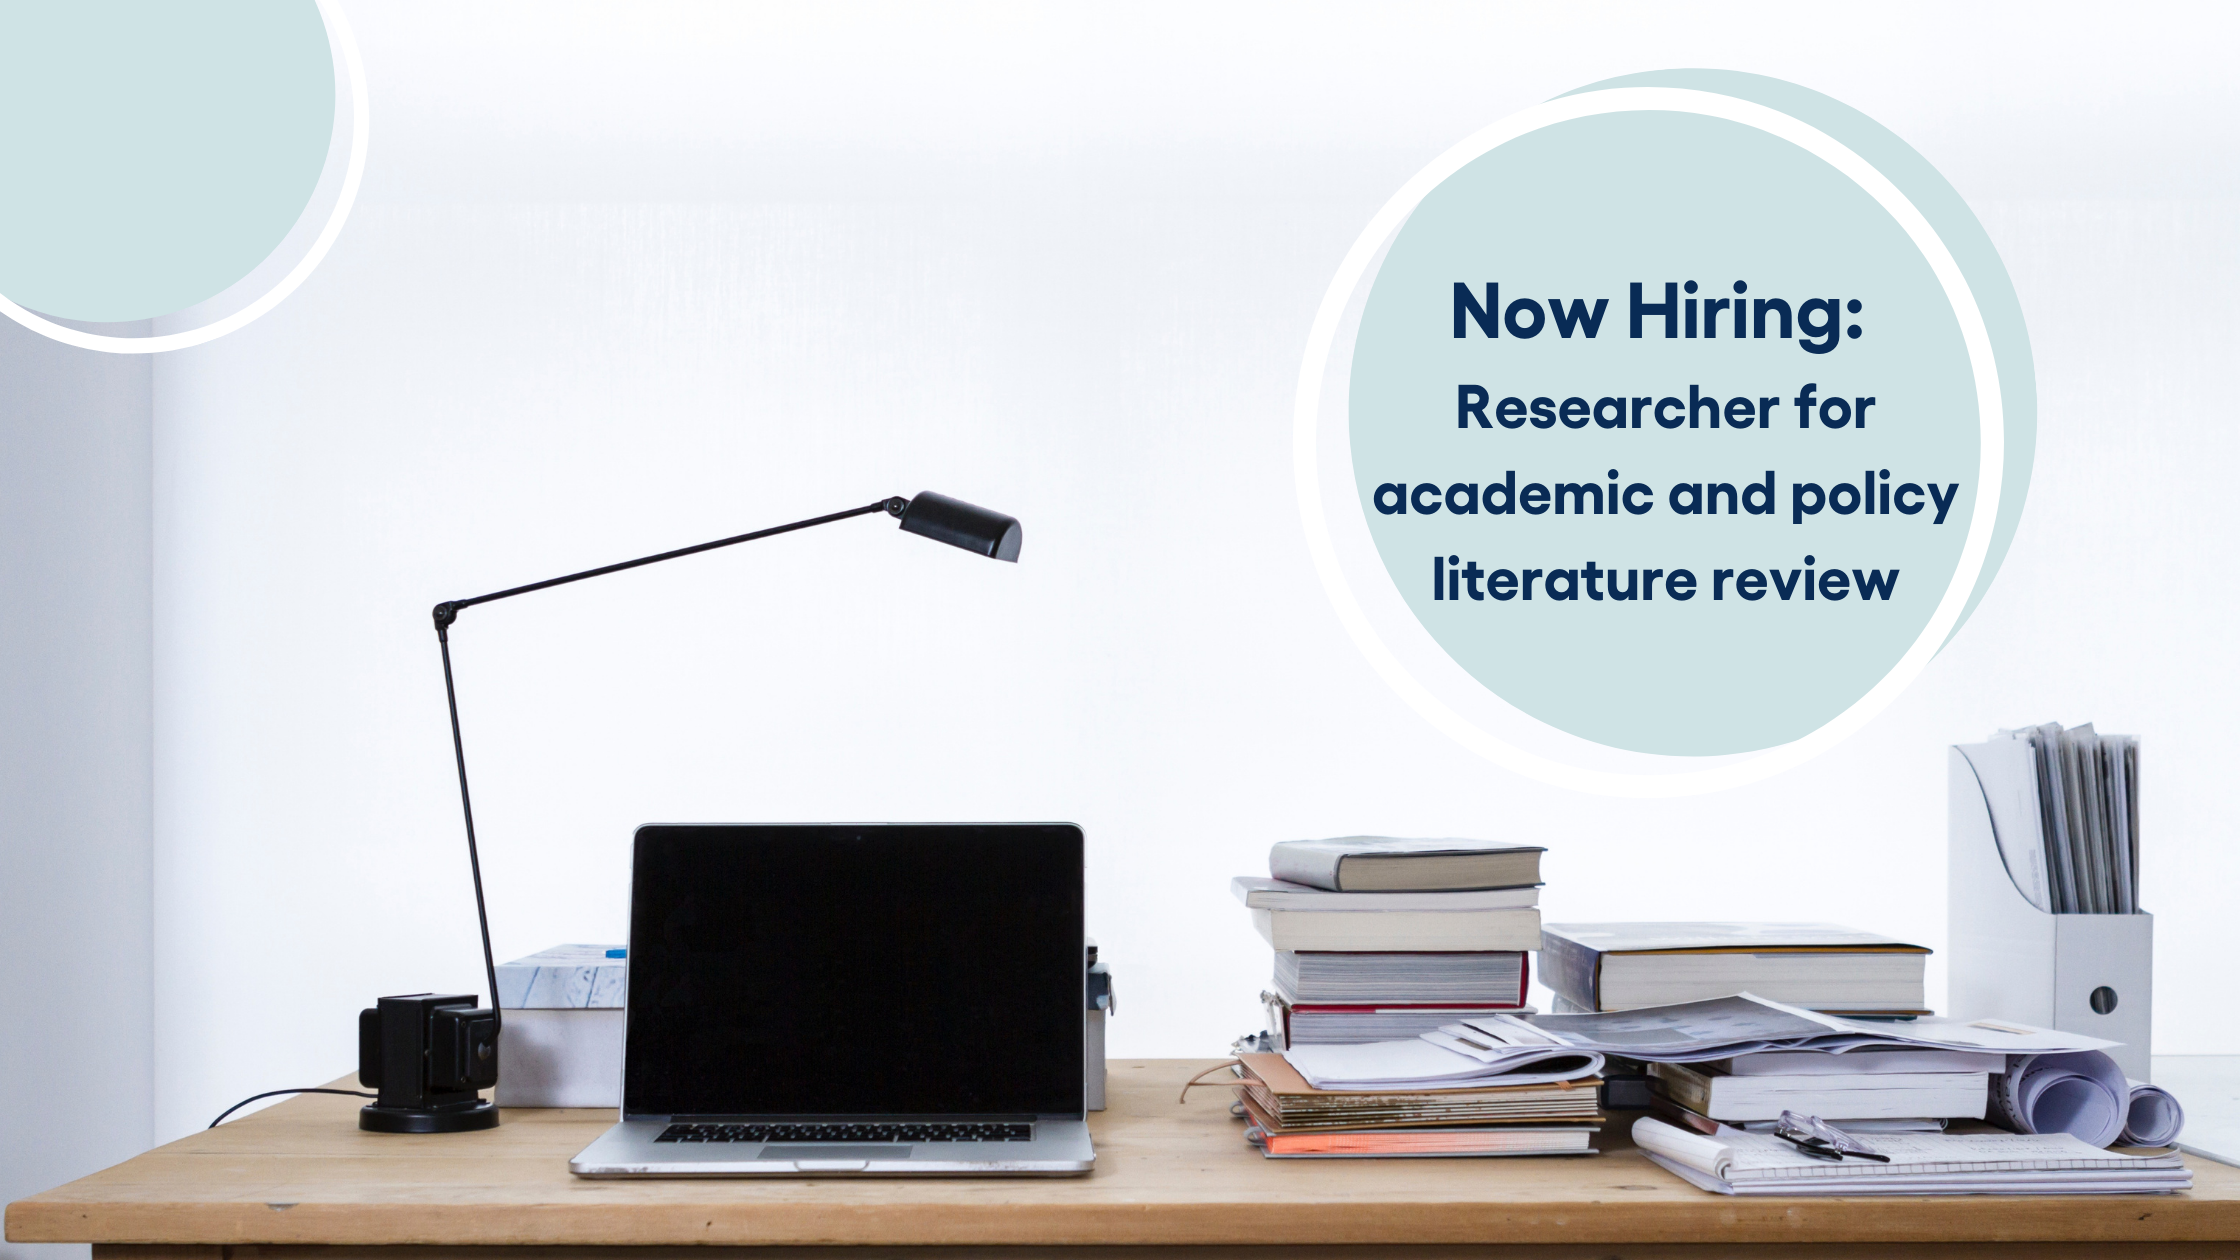 Now Hiring: Research contractor for academic and policy literature review